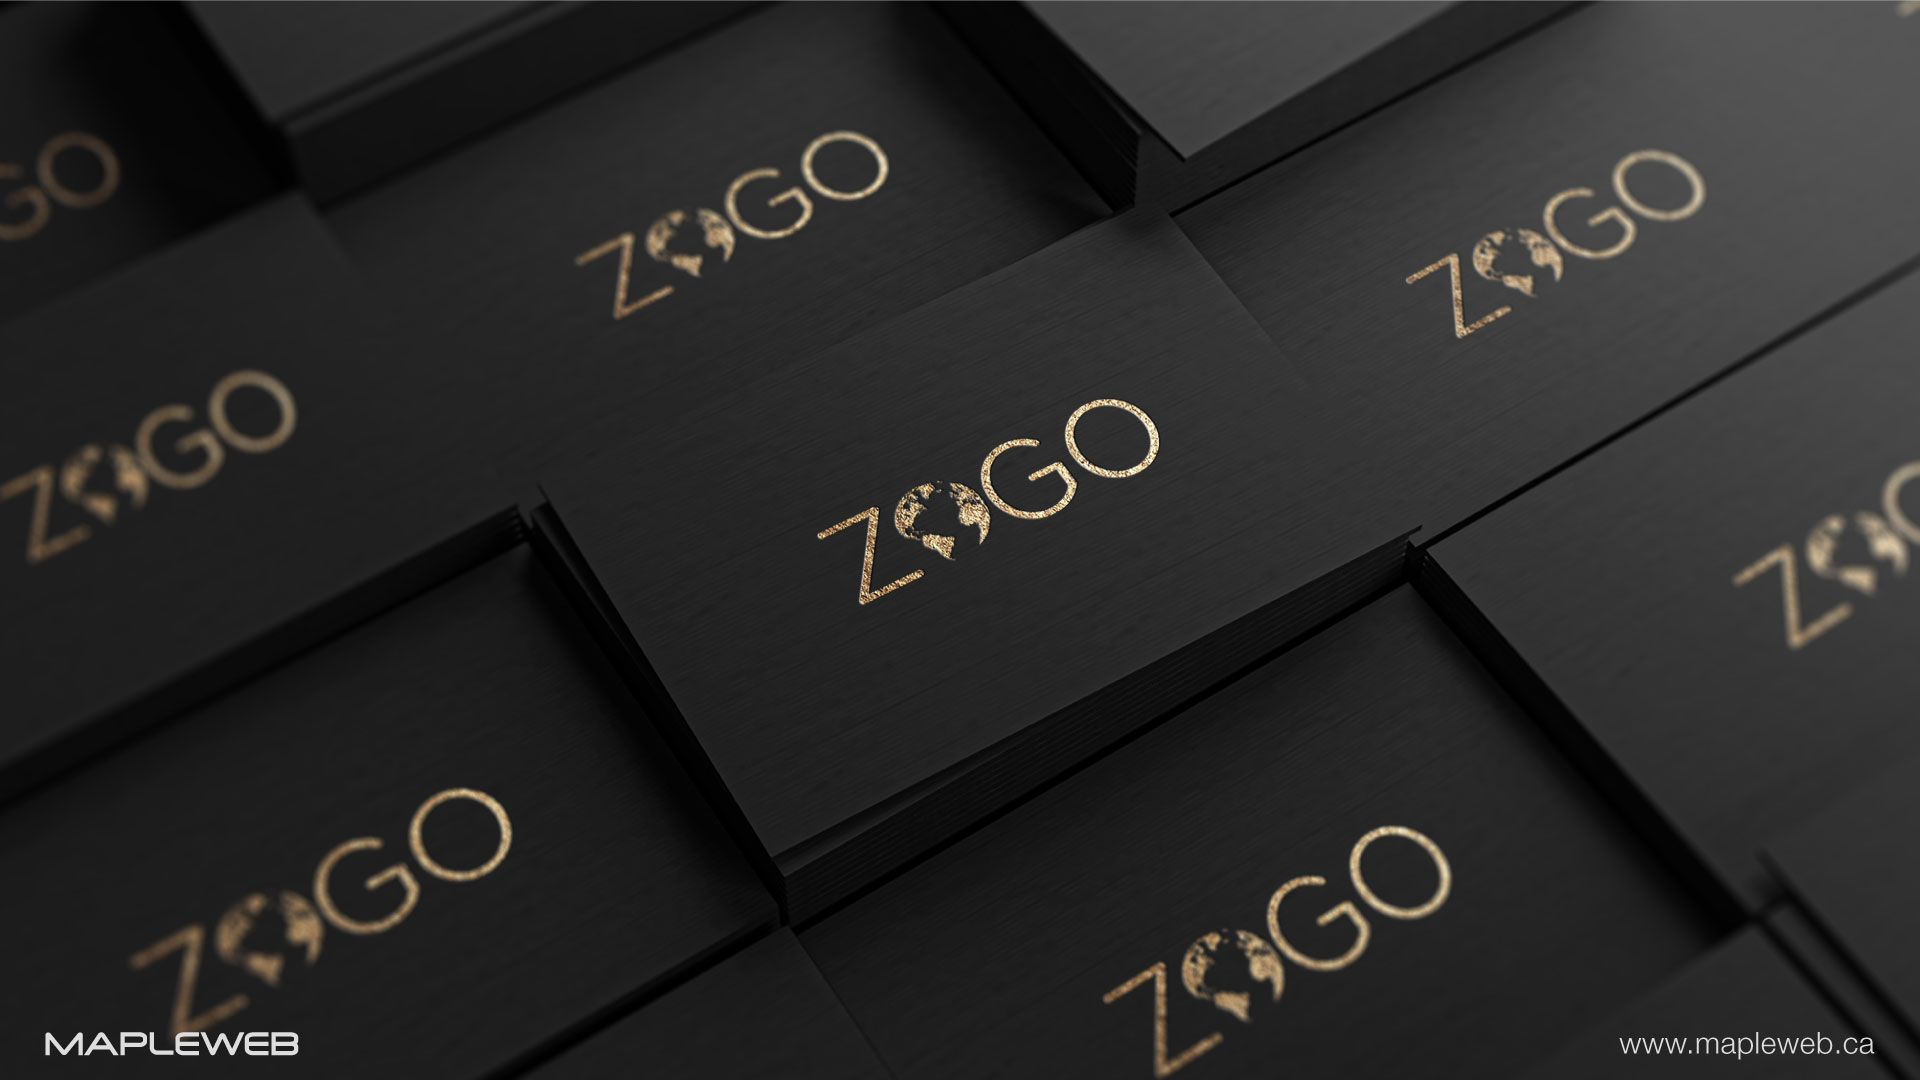 zogo-brand-logo-design-by-mapleweb-vancouver-canada-business-card-mock